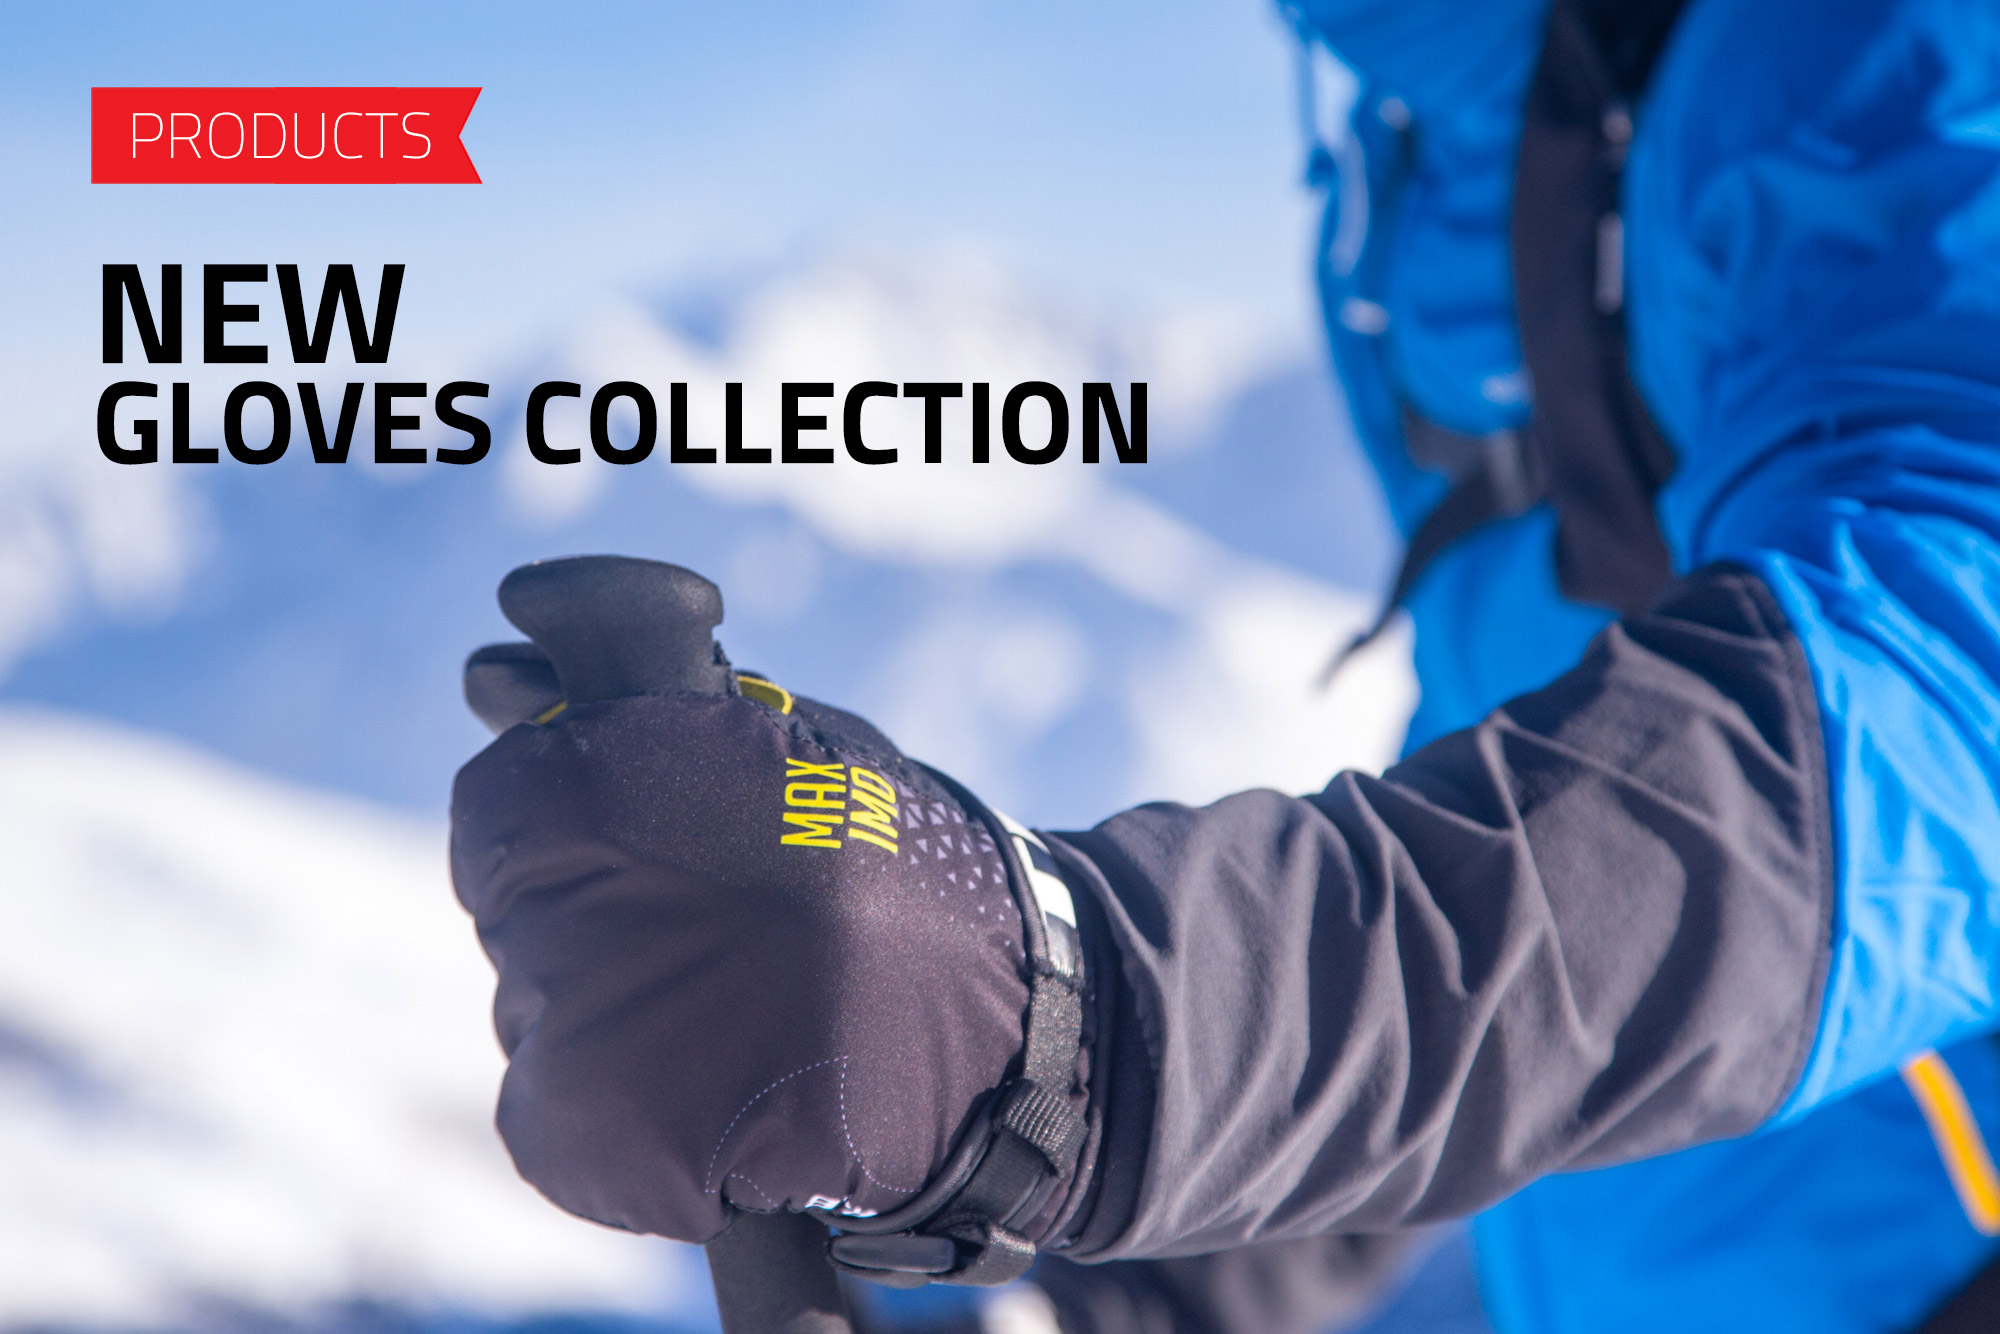 Gloves collection 2019/20